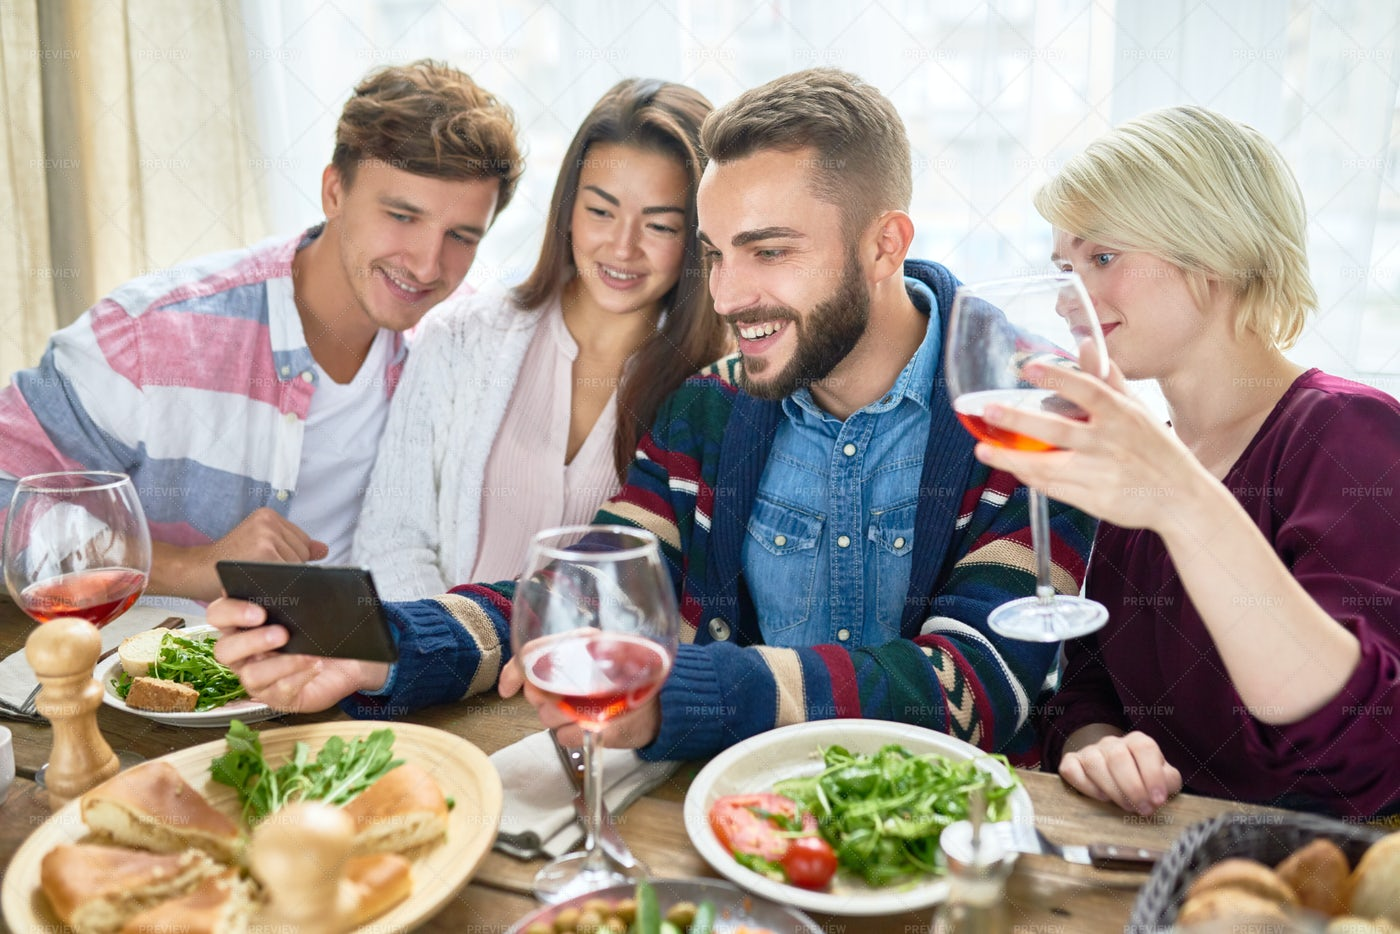 People Watching Videos At Dinner...: Stock Photos